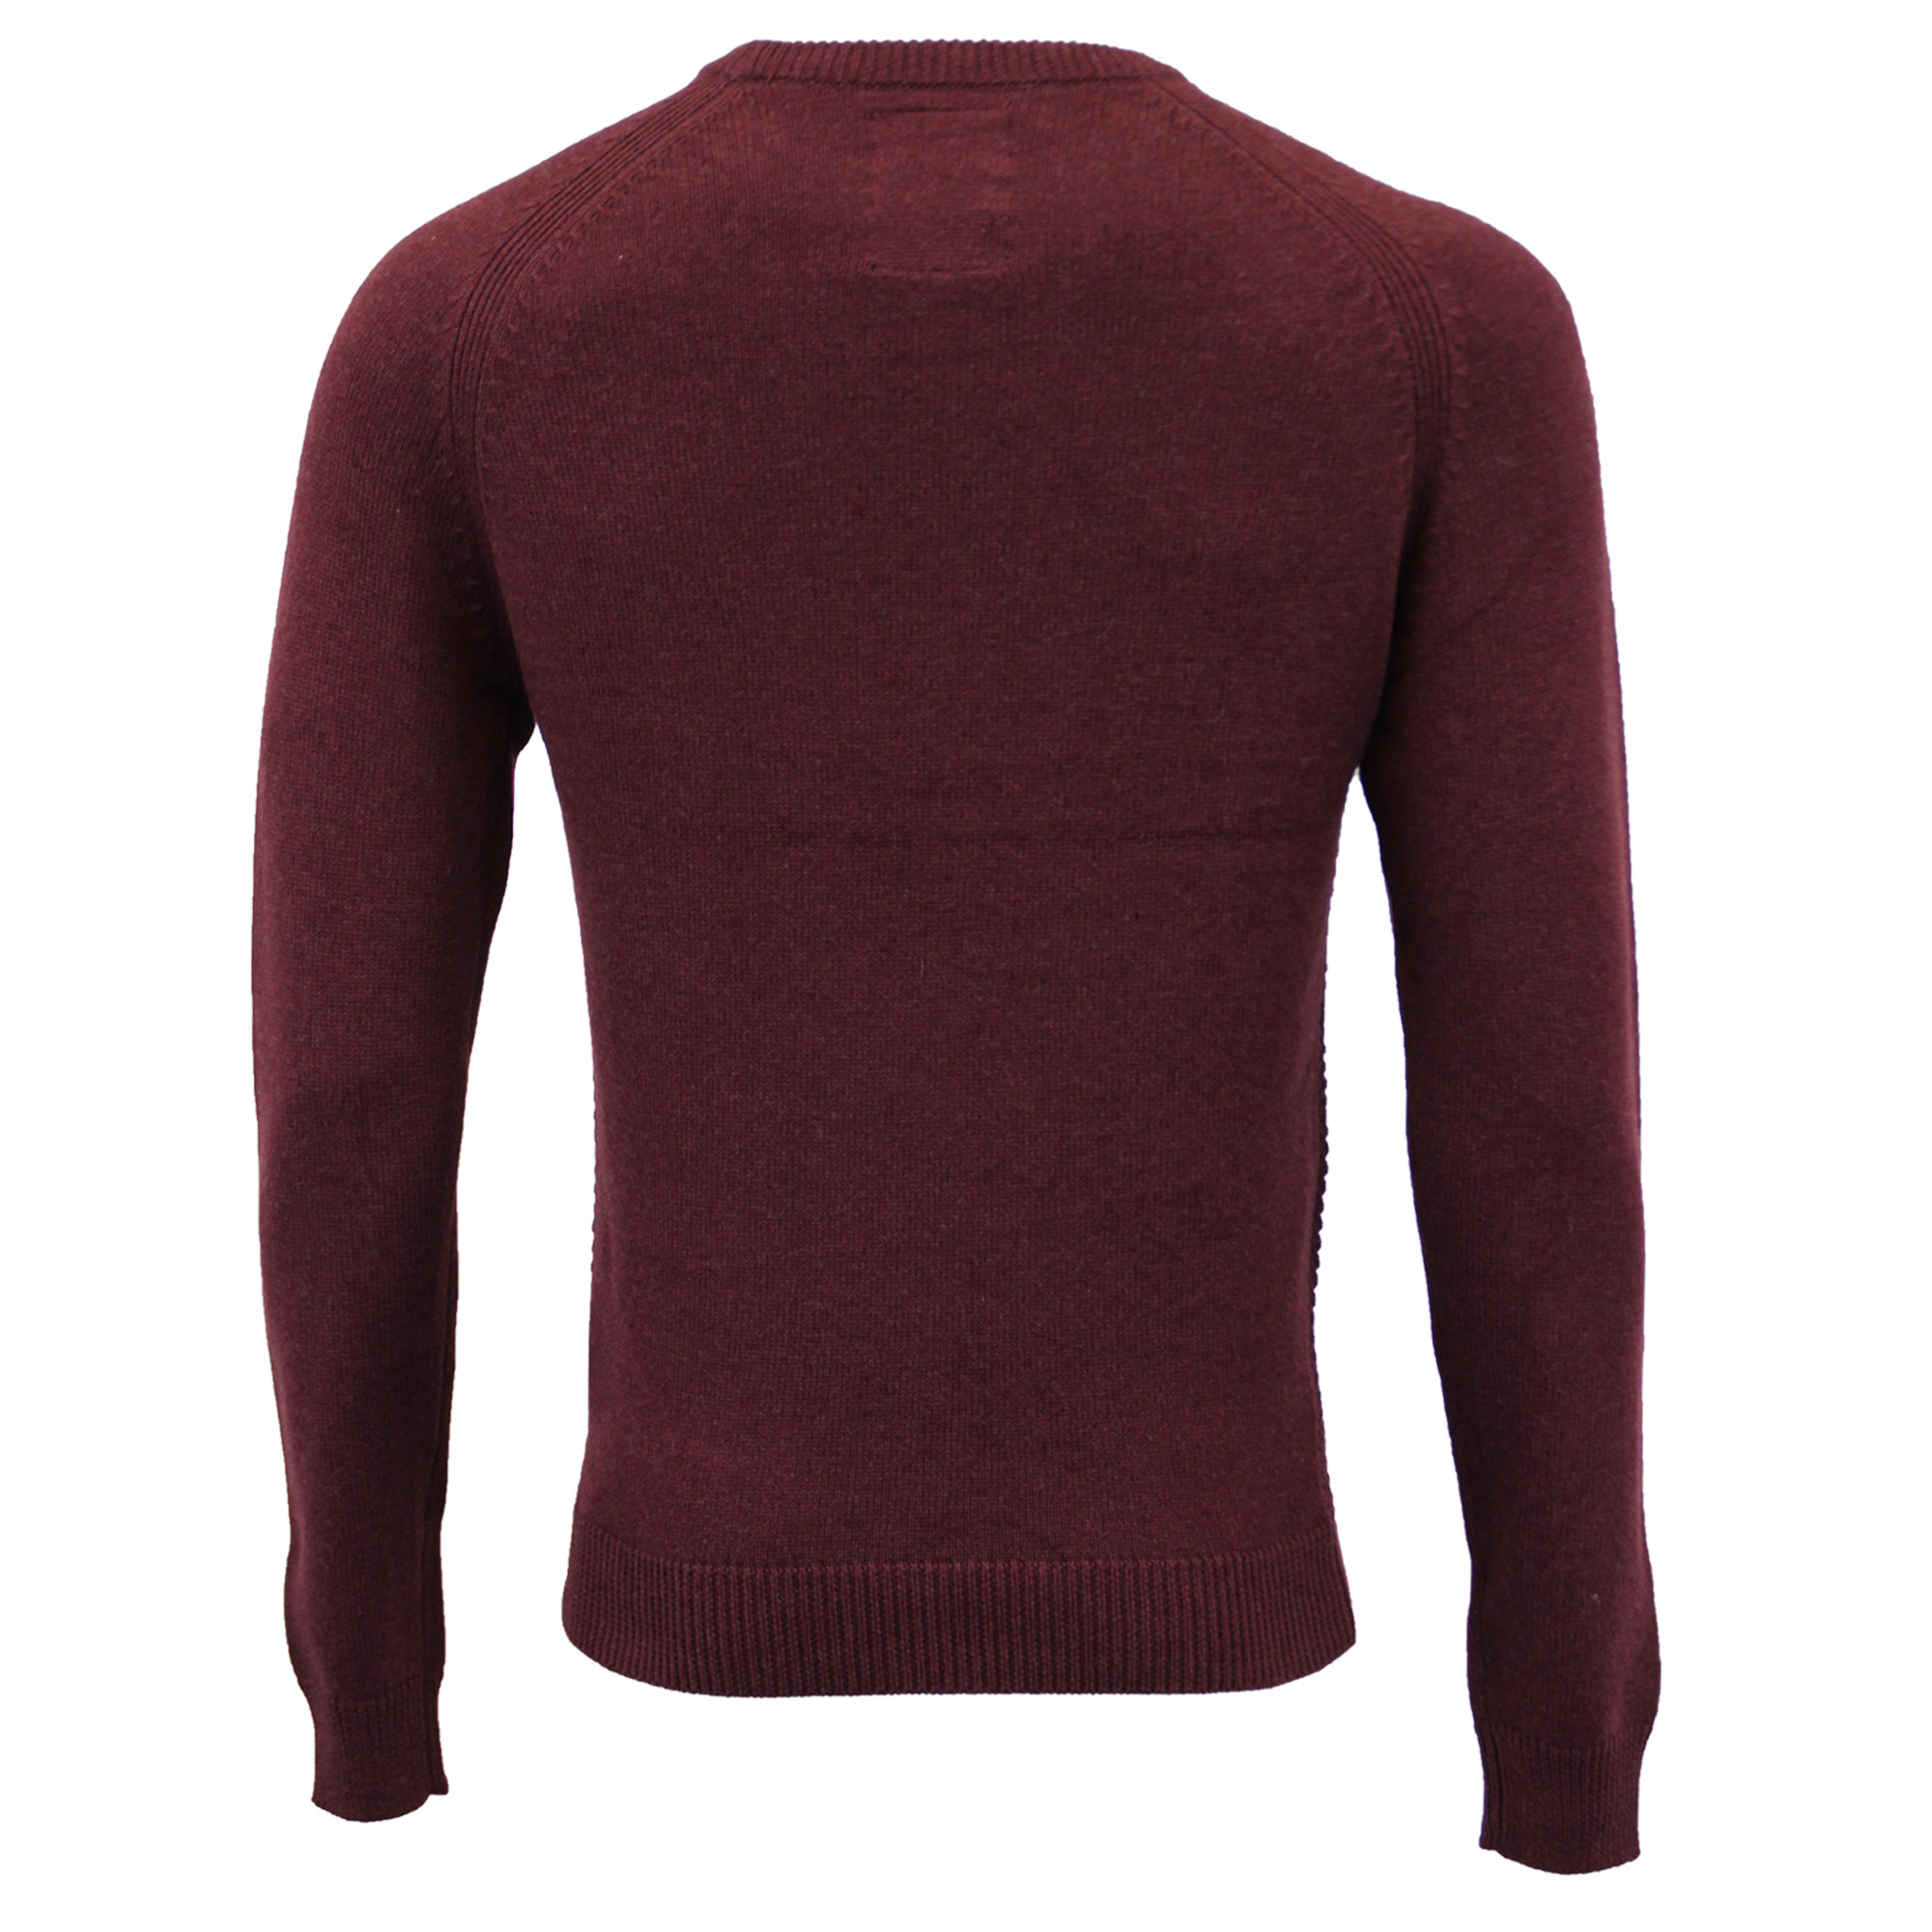 Mens-Jumper-Threadbare-Knitted-Cotton-Sweater-Half-Zip-Pullover-Top-Winter-New thumbnail 11